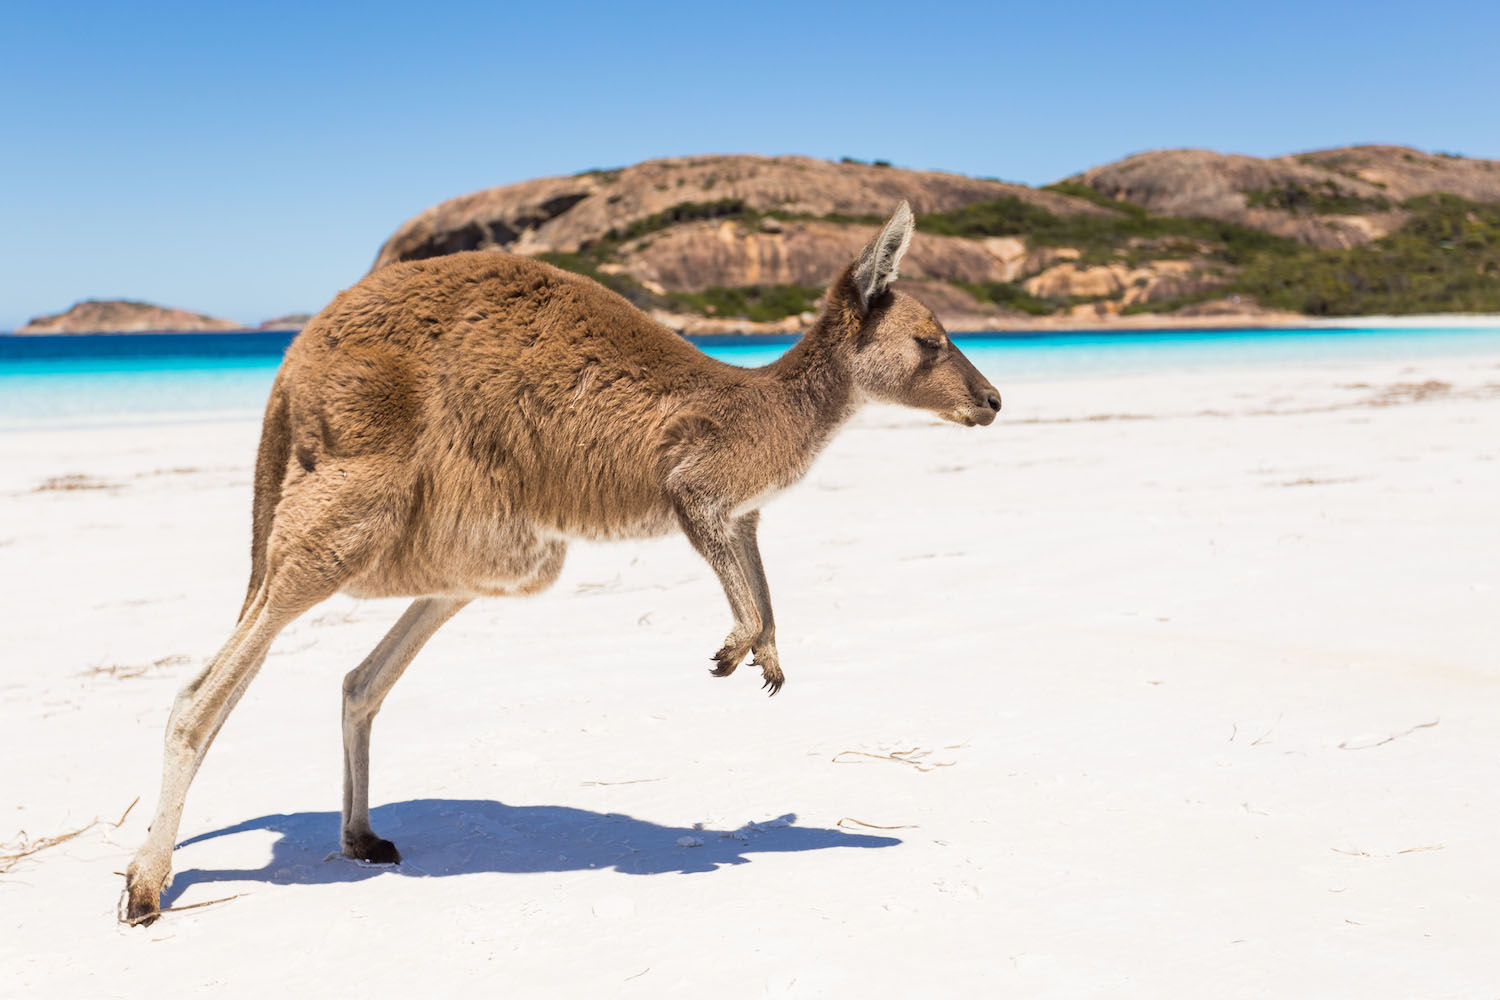 A kangaroo on a beach in Australia.